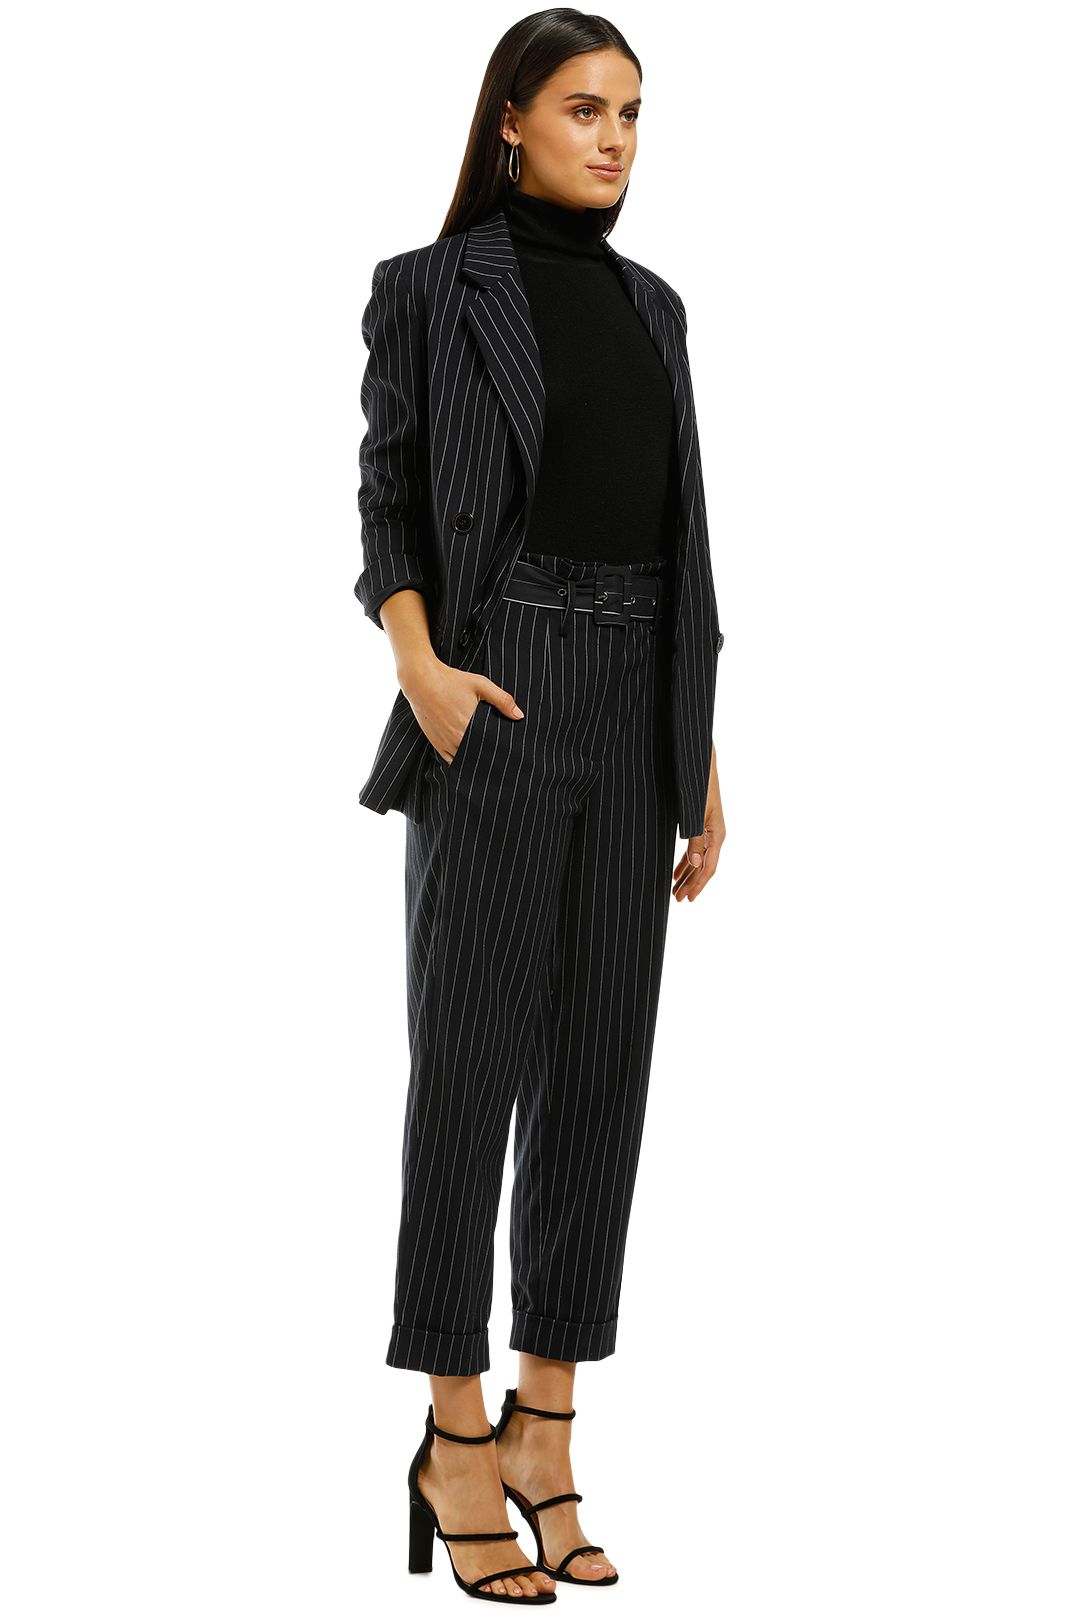 Nicholas the Label - Pinstripe Suiting Pant - Navy - Side